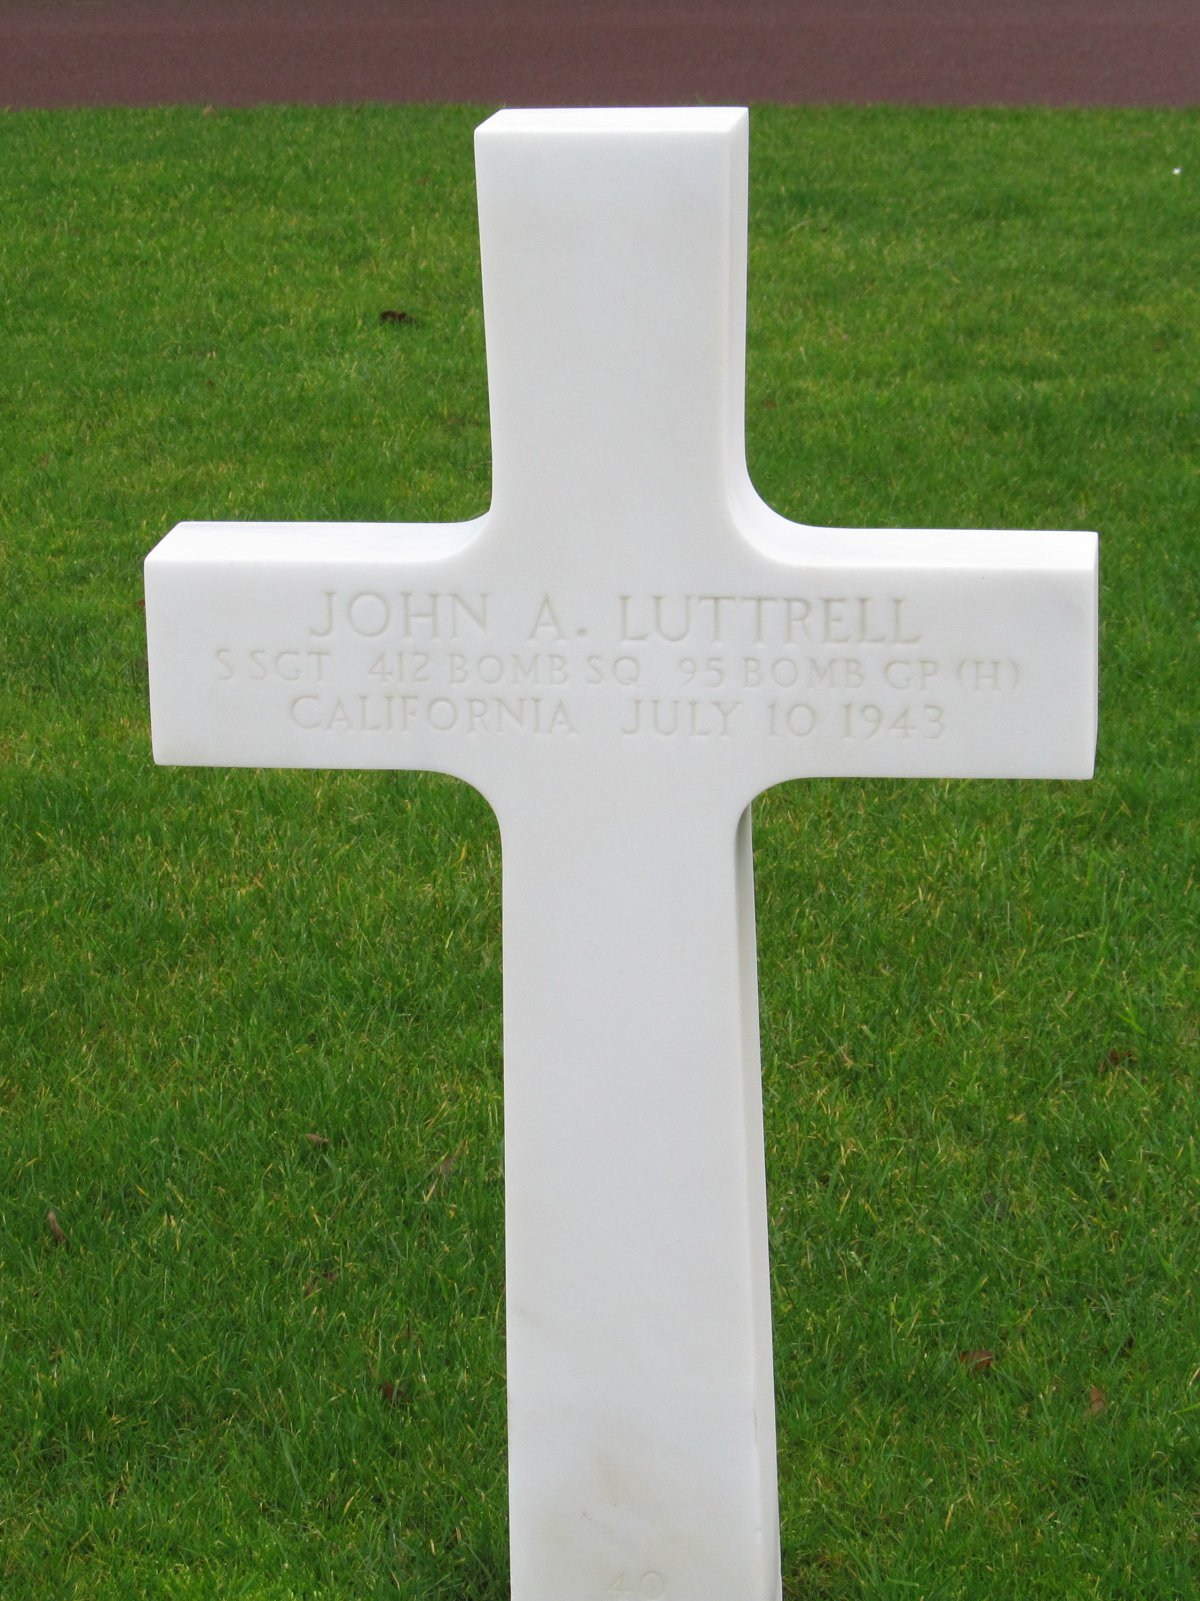 LUTTRELL John A tombe